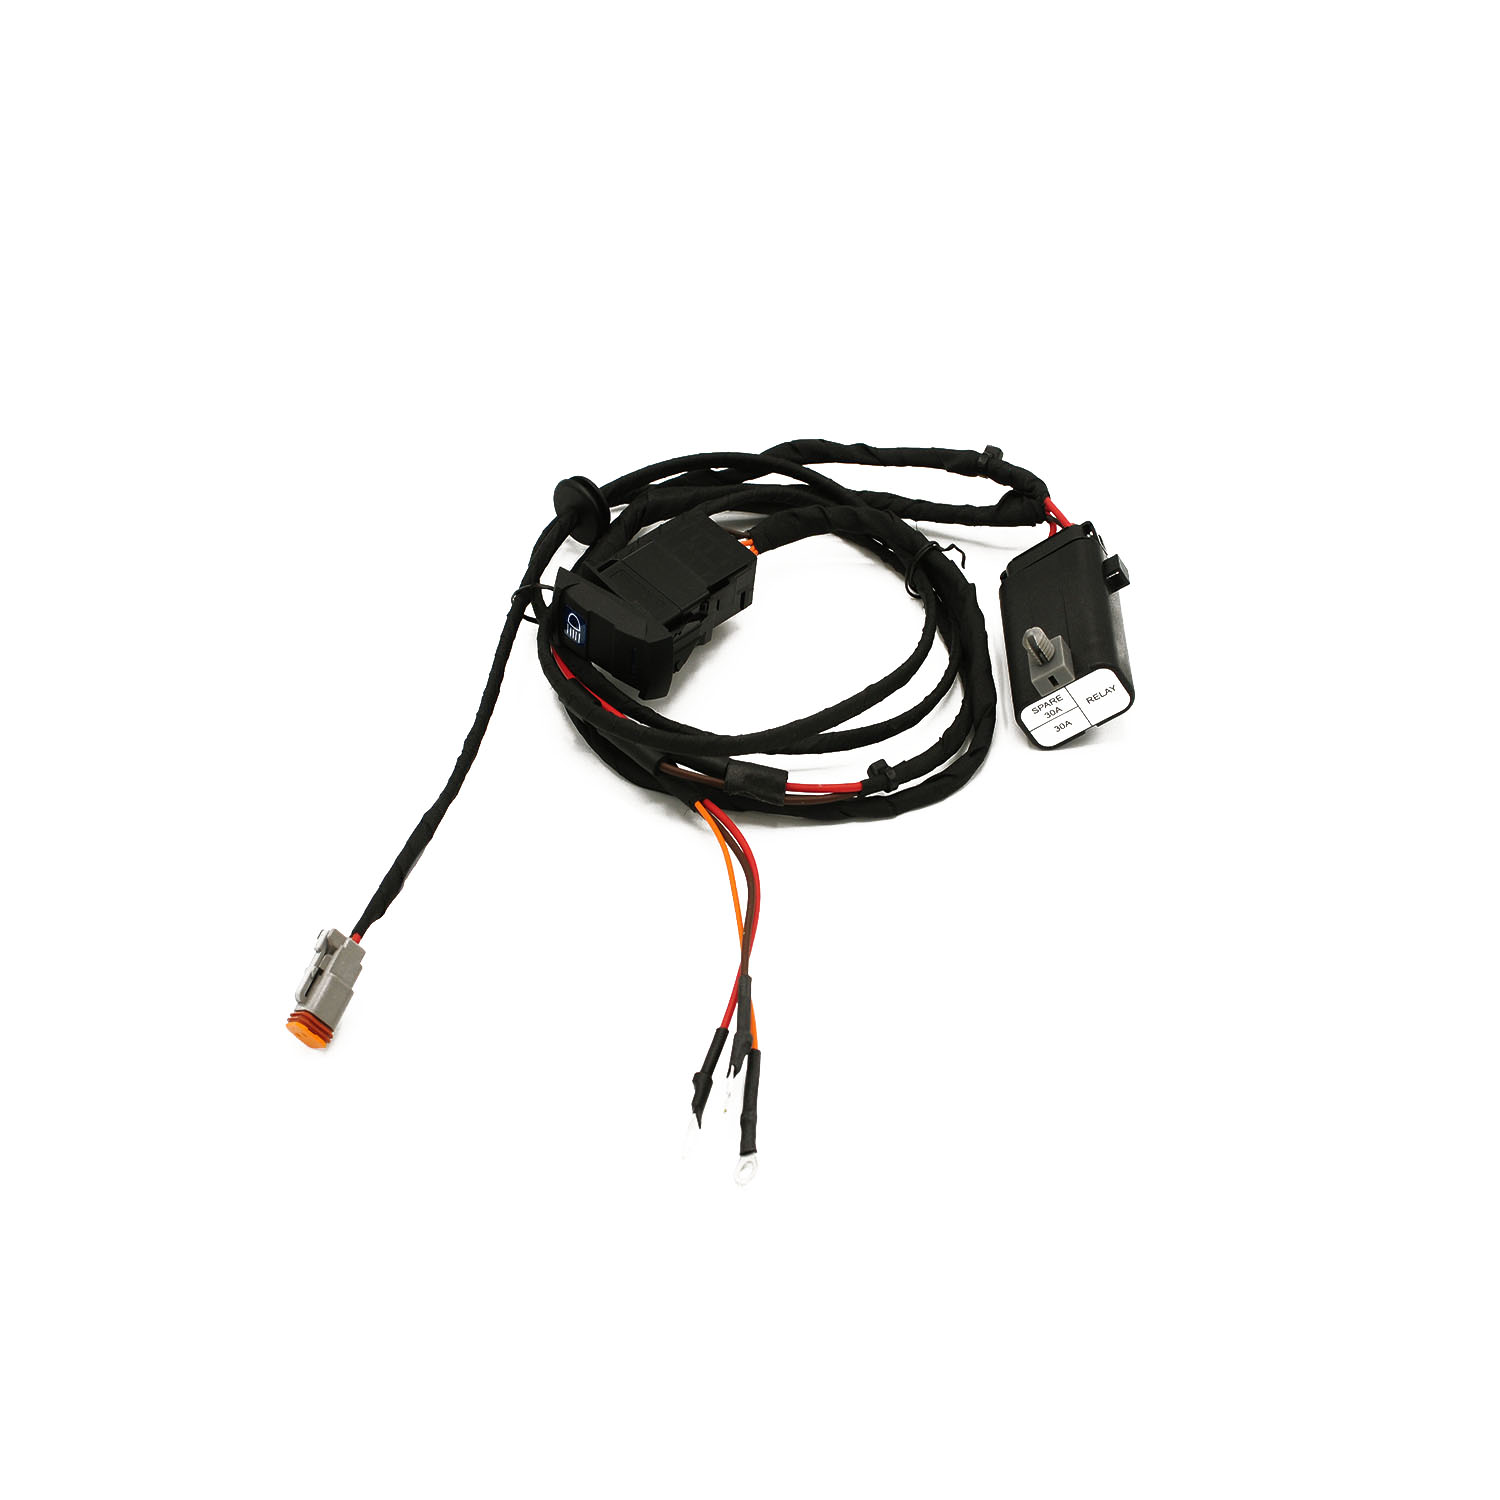 Polaris Pulse™ Wiring Harness - 1 LED Light